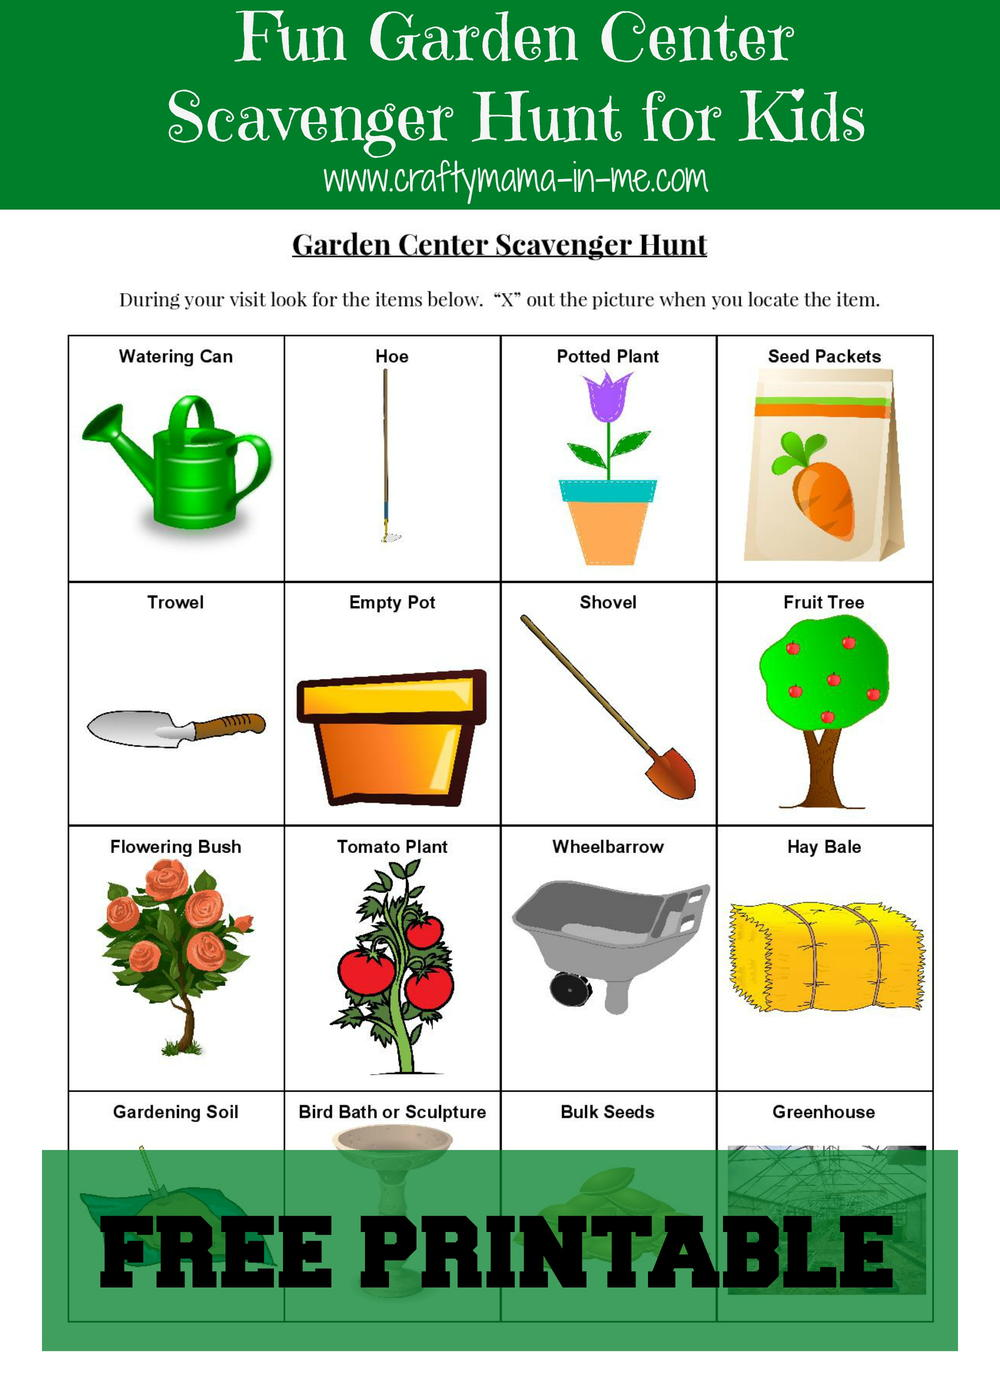 Garden-Center-Scavenger-Hunt_ExtraLarge1000_ID-1680276 Jewelry Newsletter Templates on classroom weekly, microsoft word, free printable monthly, fun company, free office,